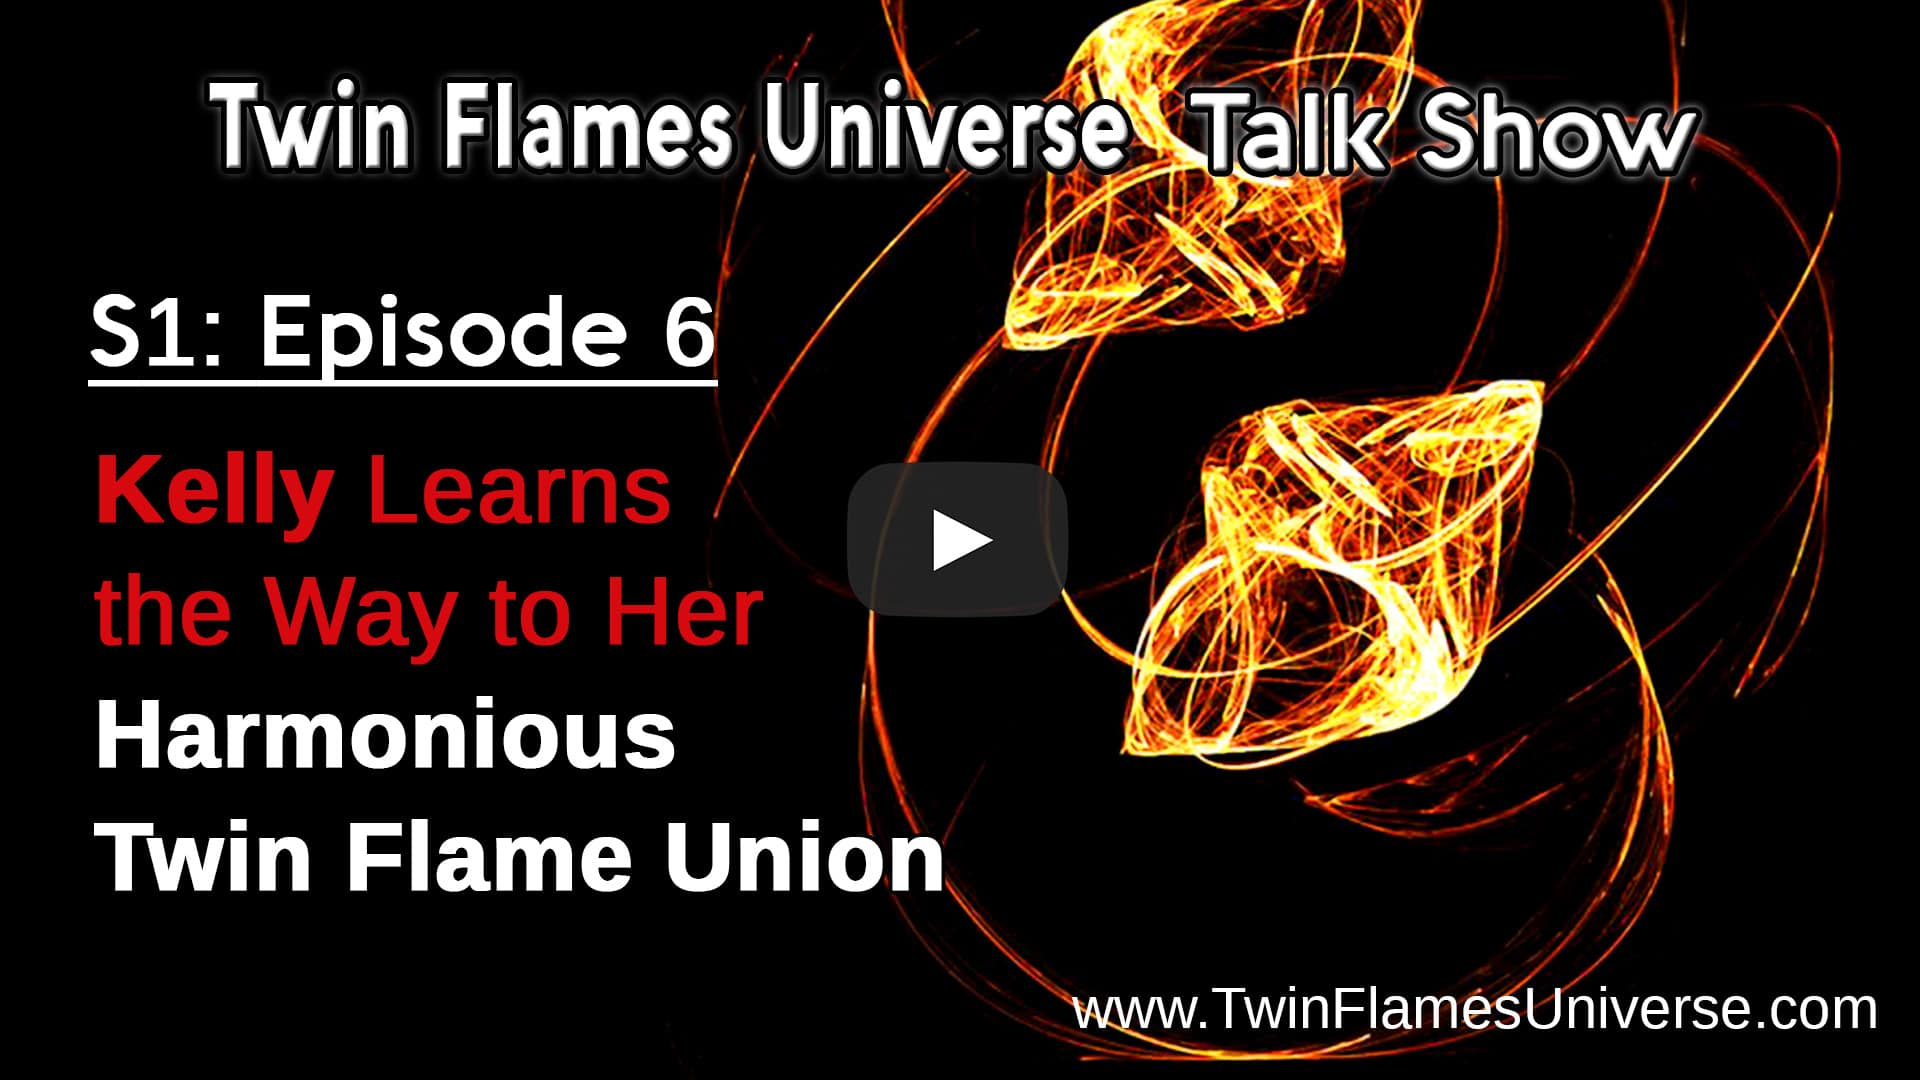 Twin Flames Universe Talk Show Archives - Twin Flames Universe